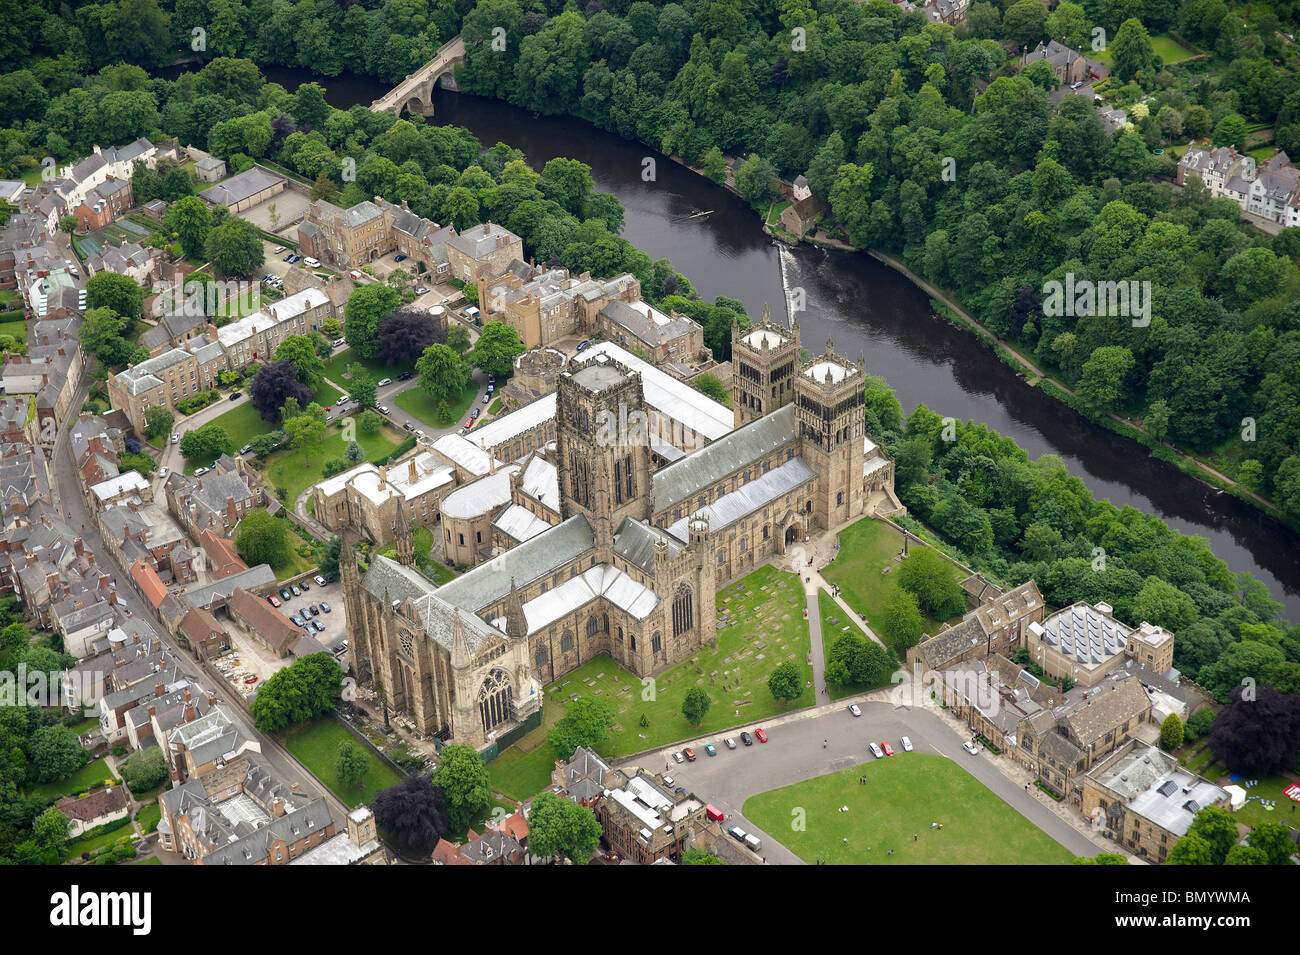 Durham Cathedral from the air, Summer 2010, North East England - Stock Image